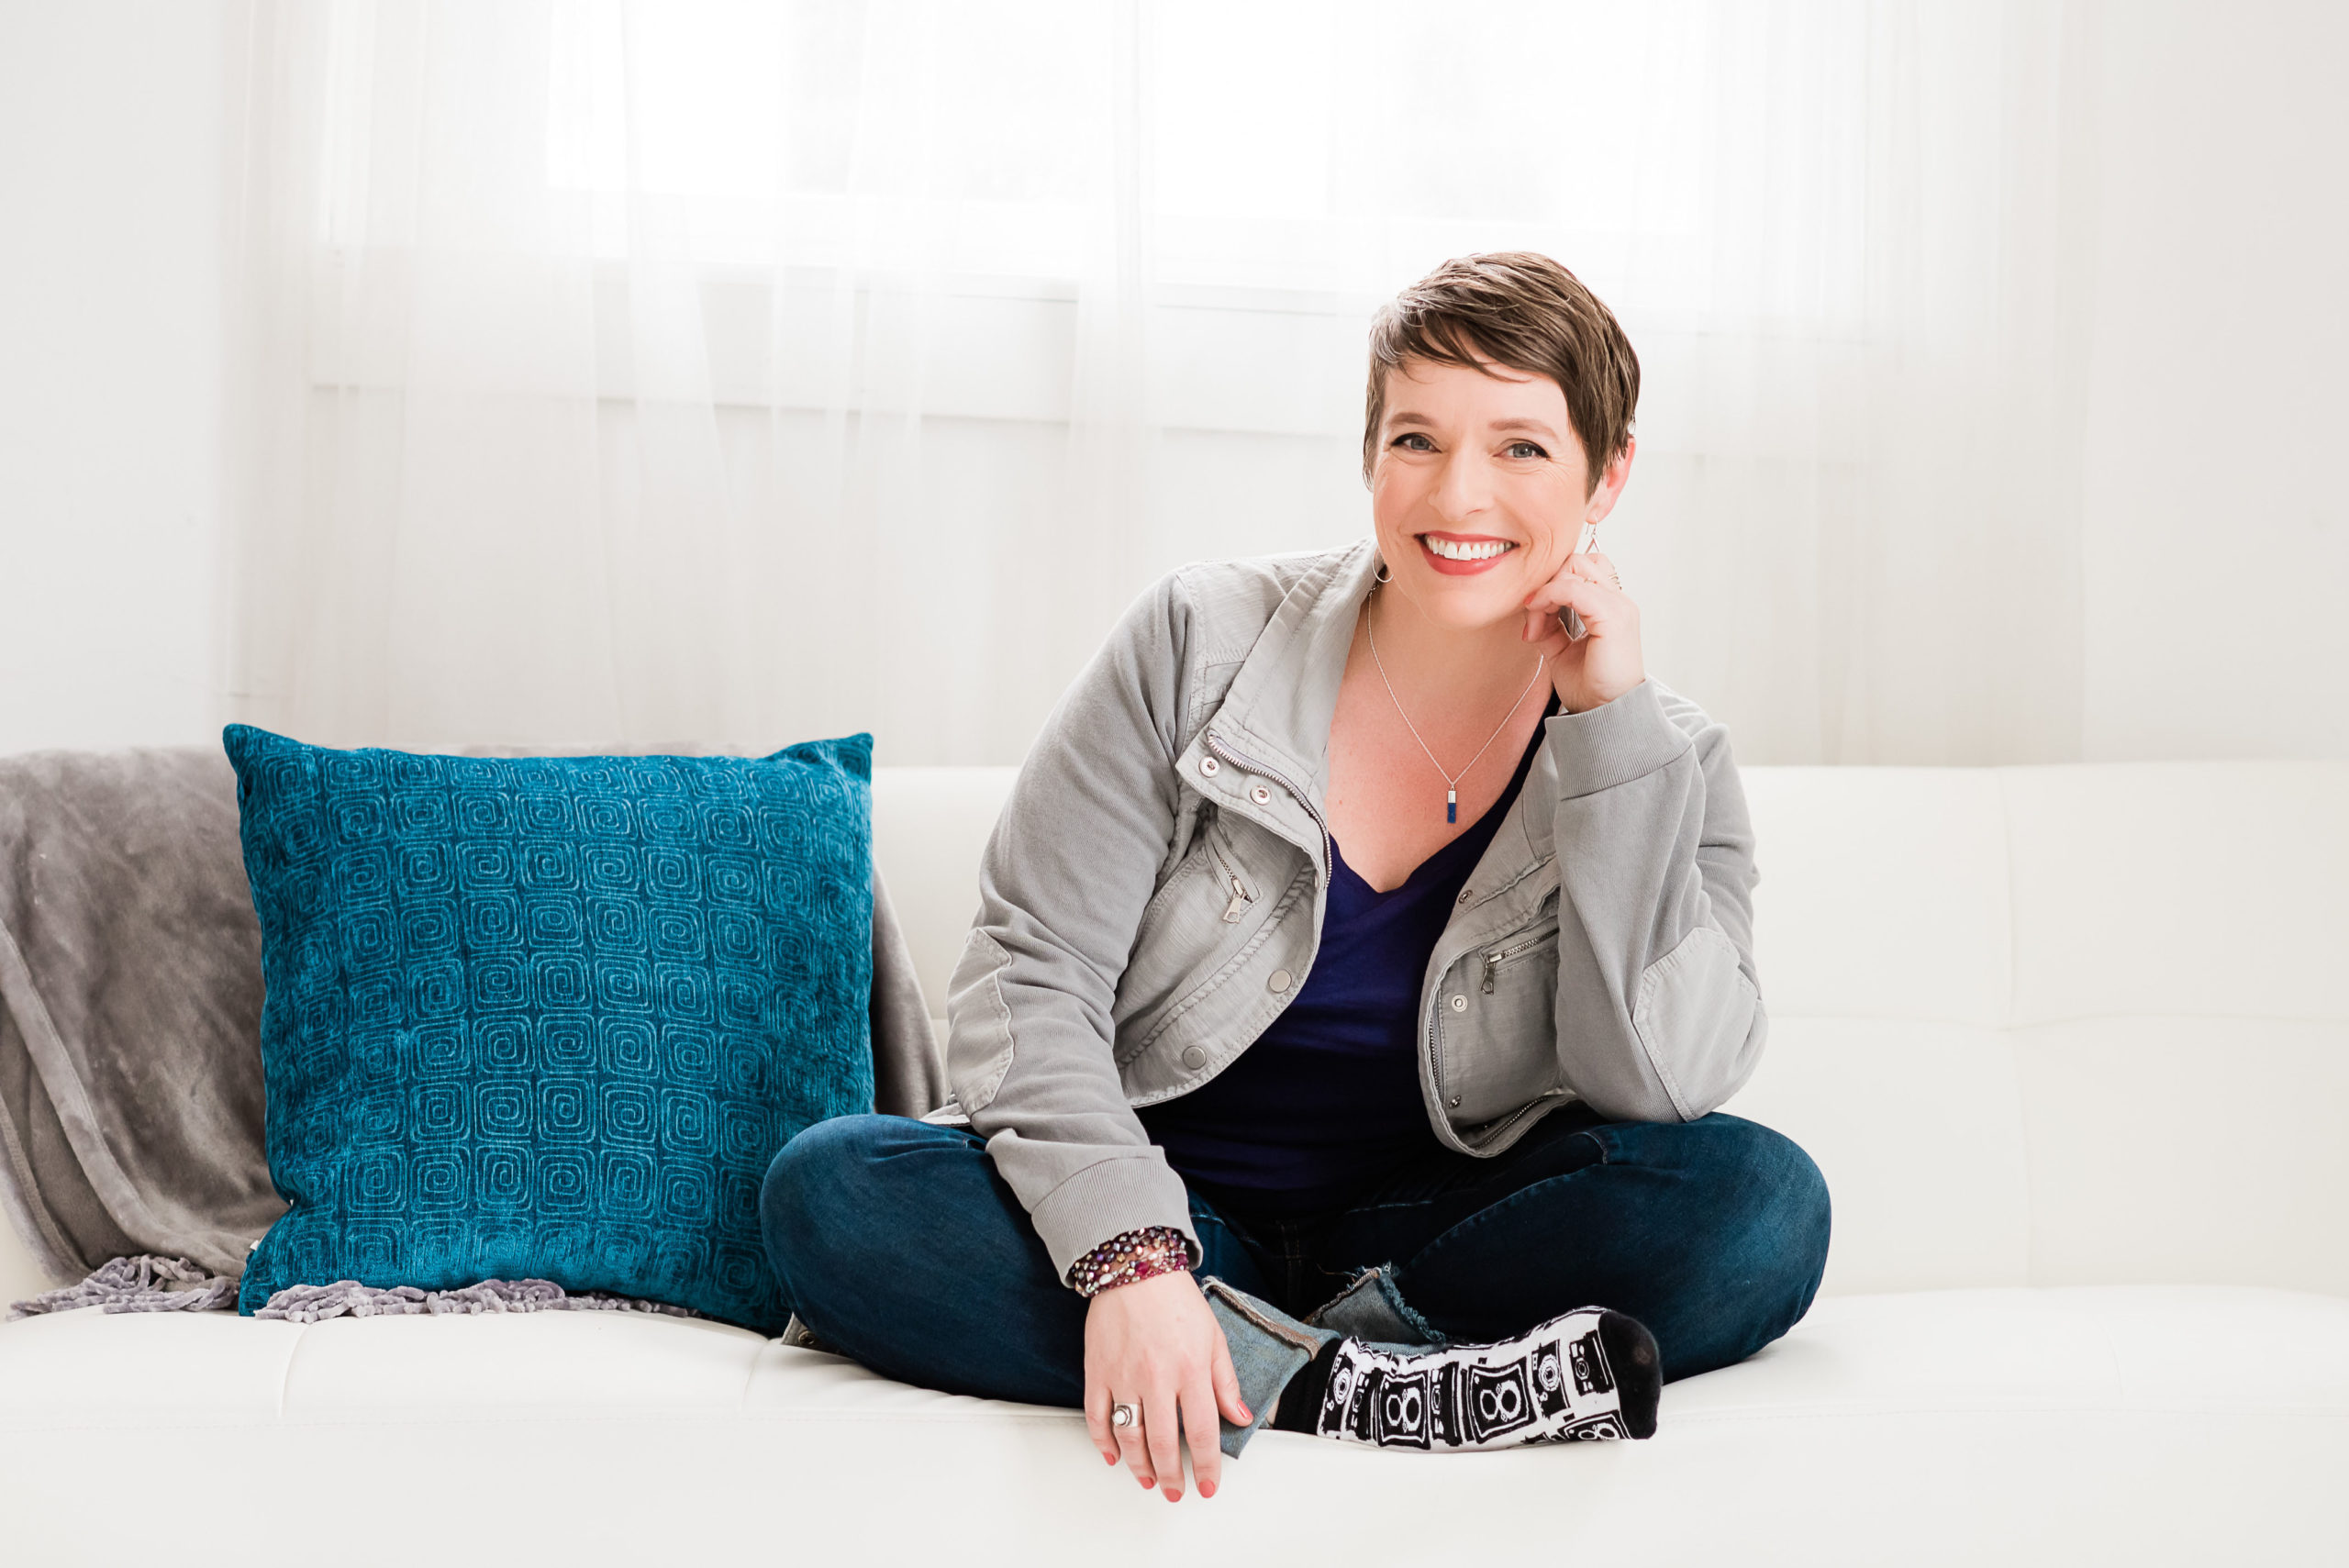 Smiling woman sitting cross legged on a white couch with blue pillow.